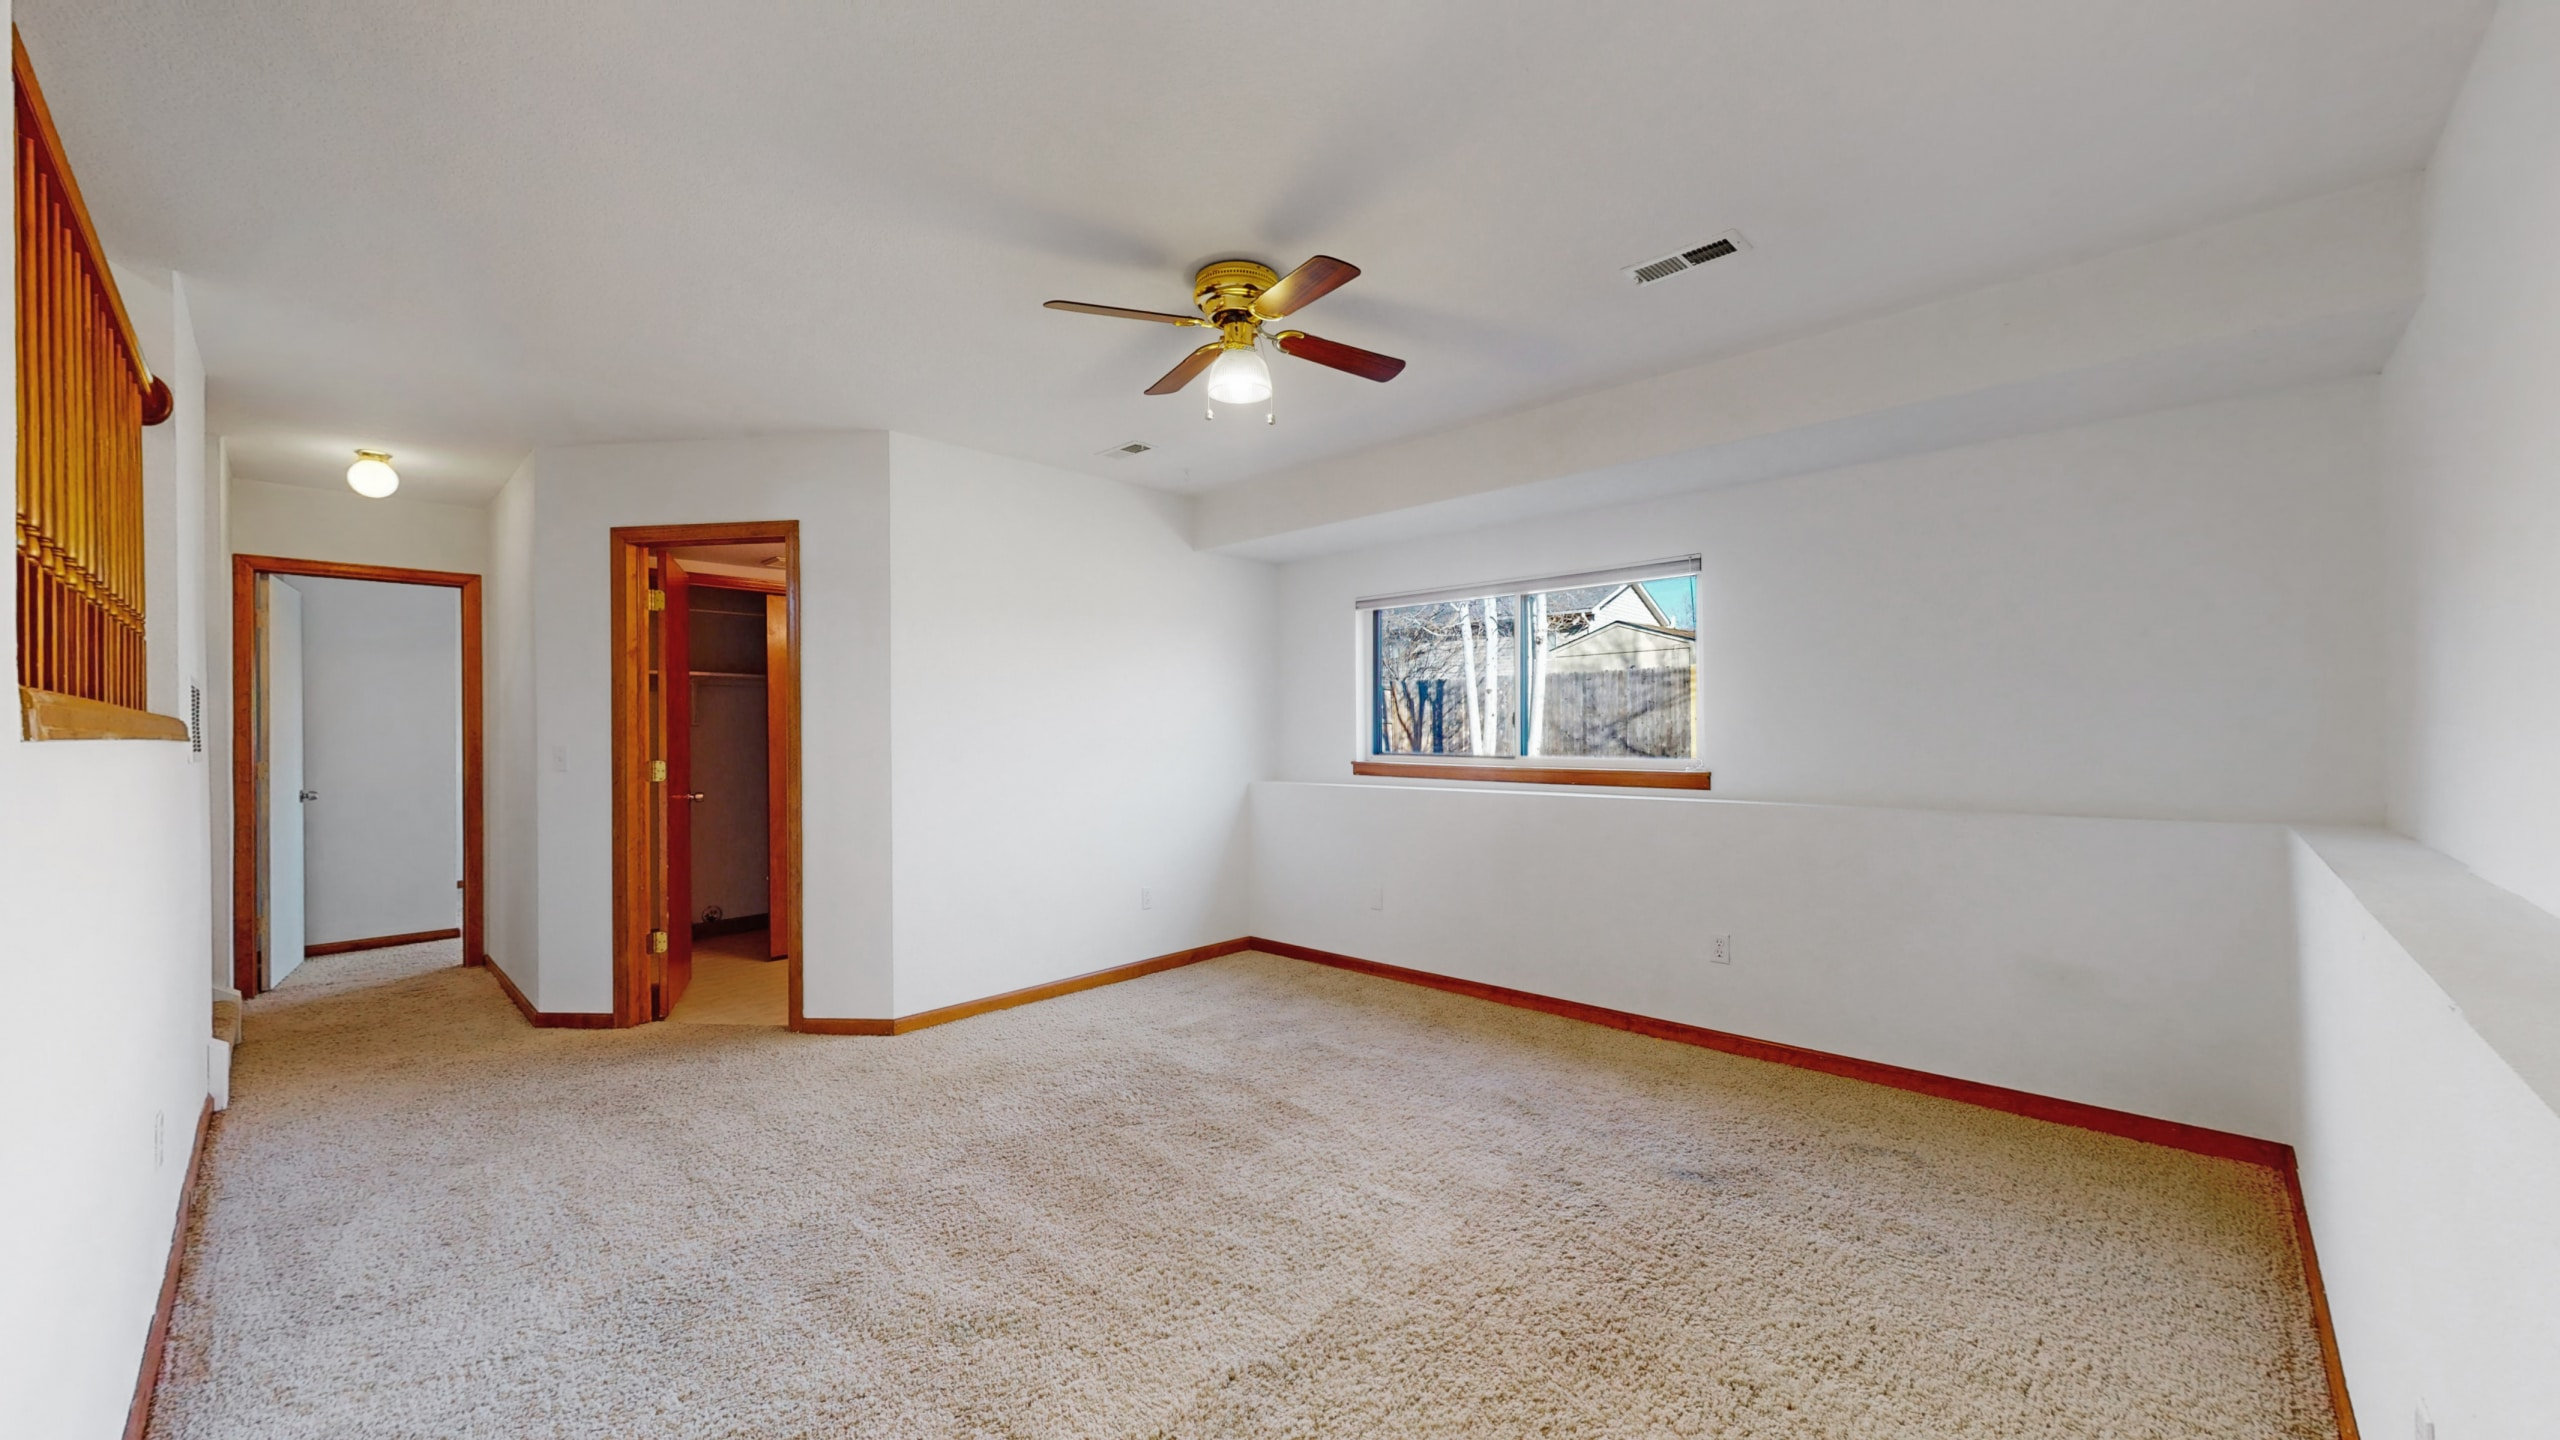 Brighton house for sale family room with white carpet white walls